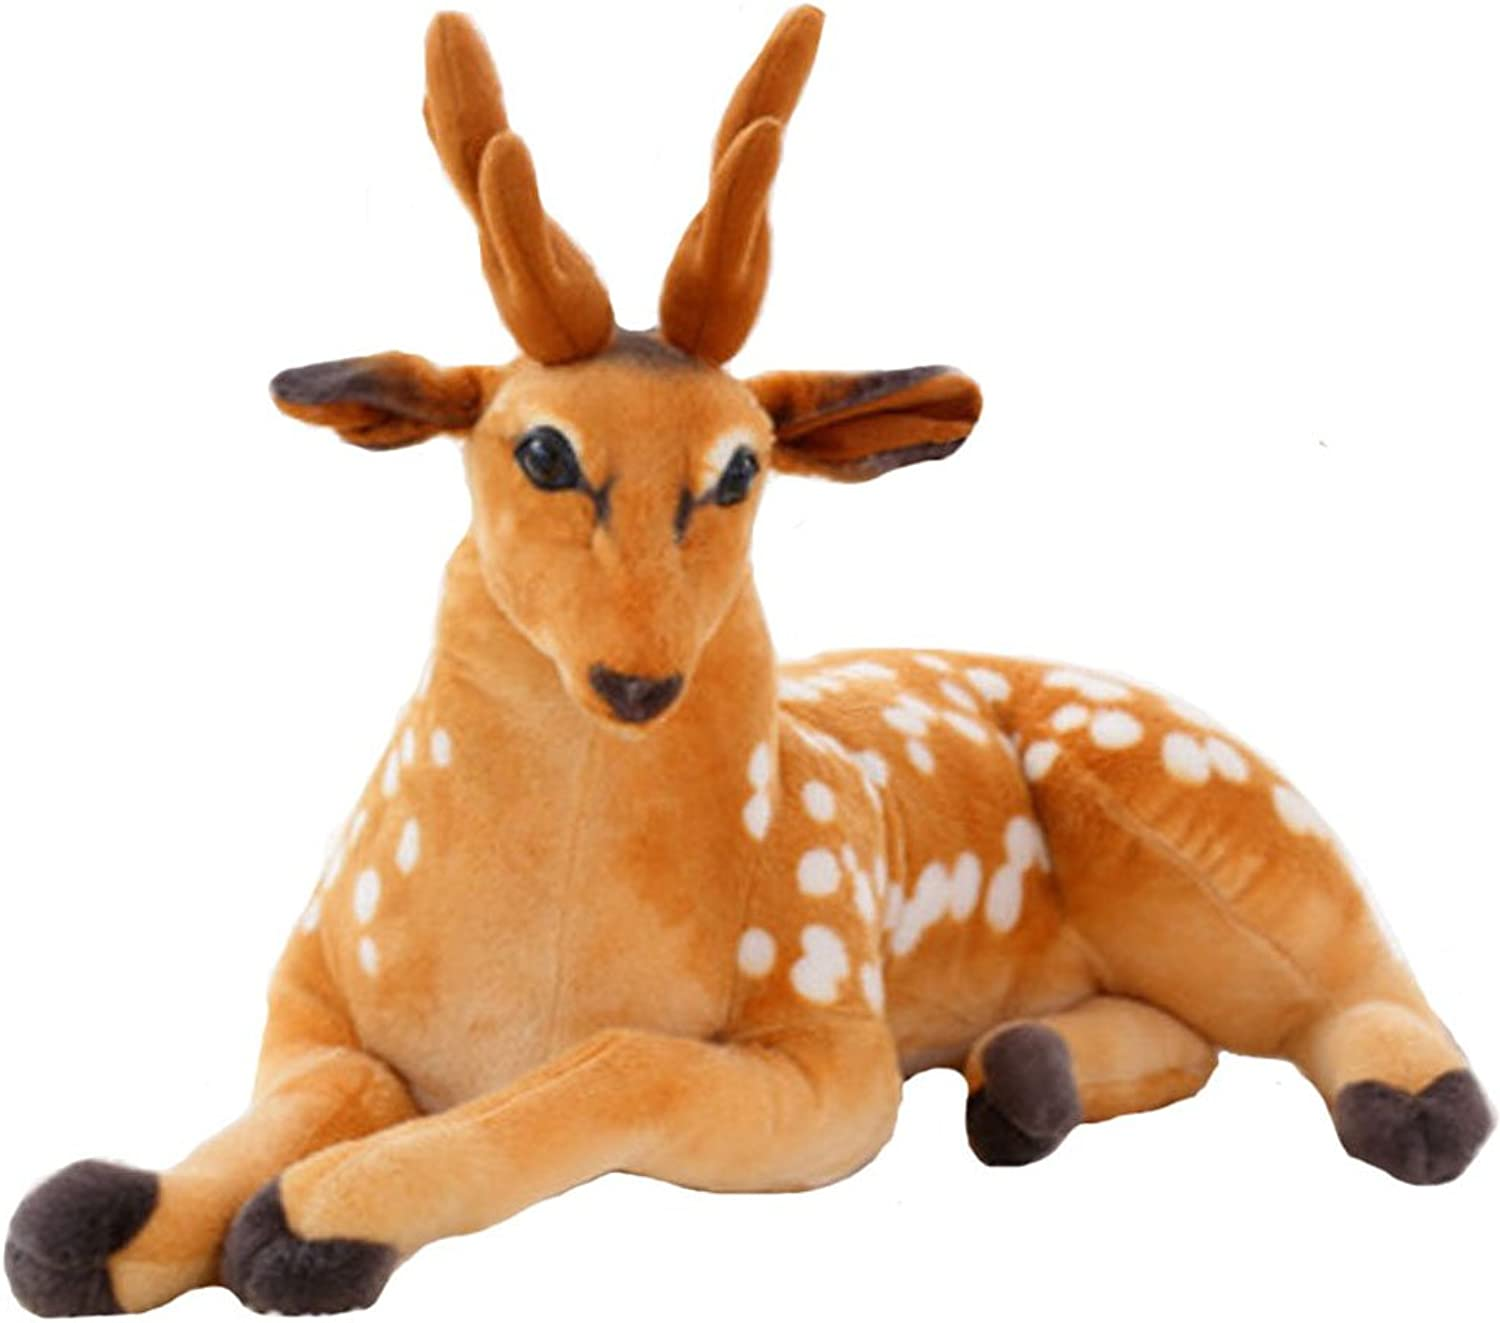 BIBITIME 65cm 25.59 in Plush Deer Toy Animal Stuffed Doll Christmas Decorative Pillow Home Ornaments for Living Room Sofa Couch Valentine's Days Gift Present